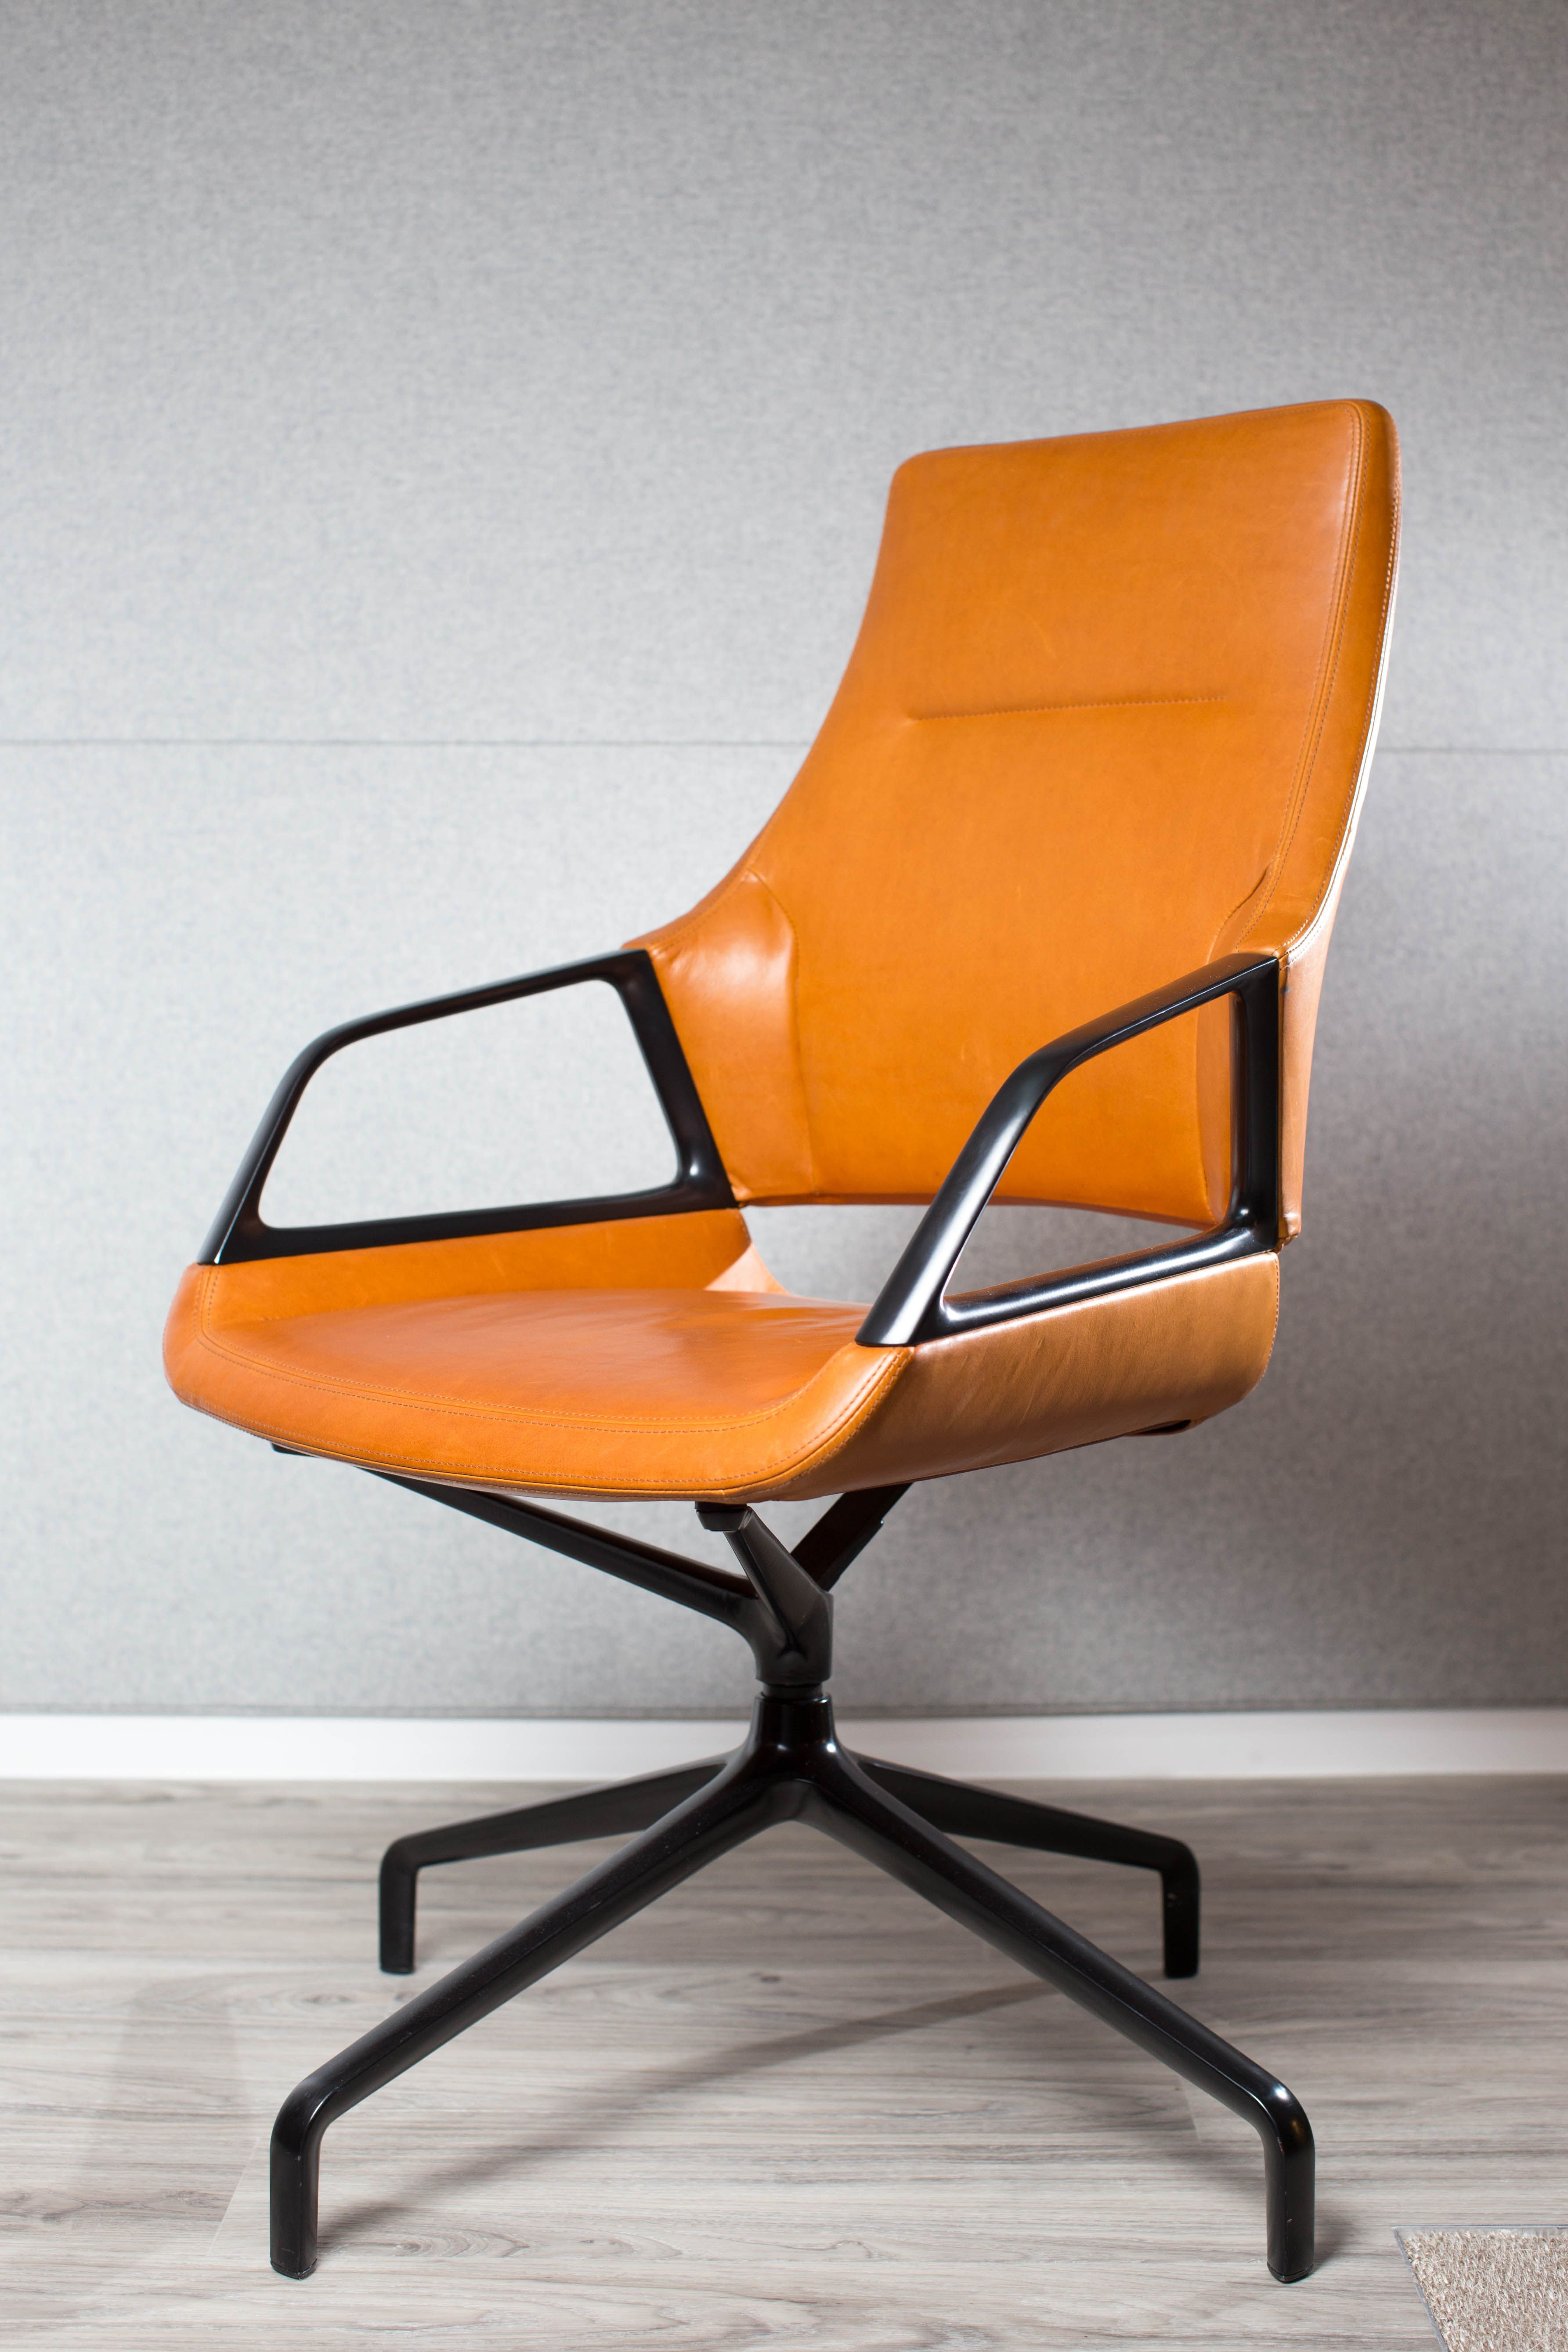 GRAPH conference chair Design by jehs laub